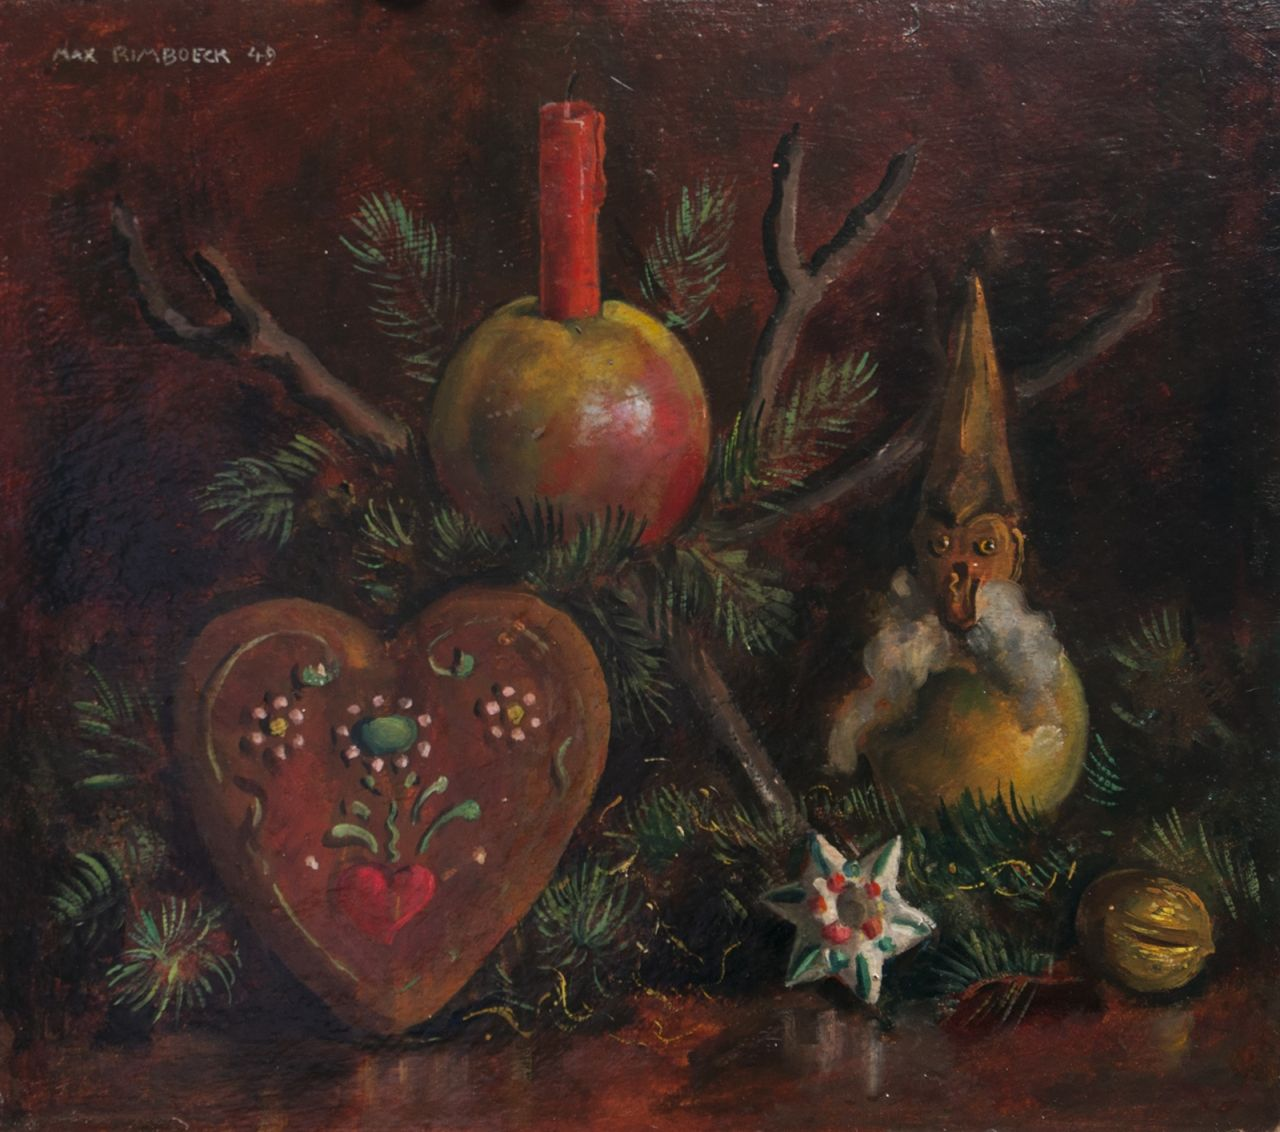 Rimböck M.  | Max Rimböck | Paintings offered for sale | Christmas still life, oil on painter's board 29.4 x 35.3 cm, signed u.l. and dated '49